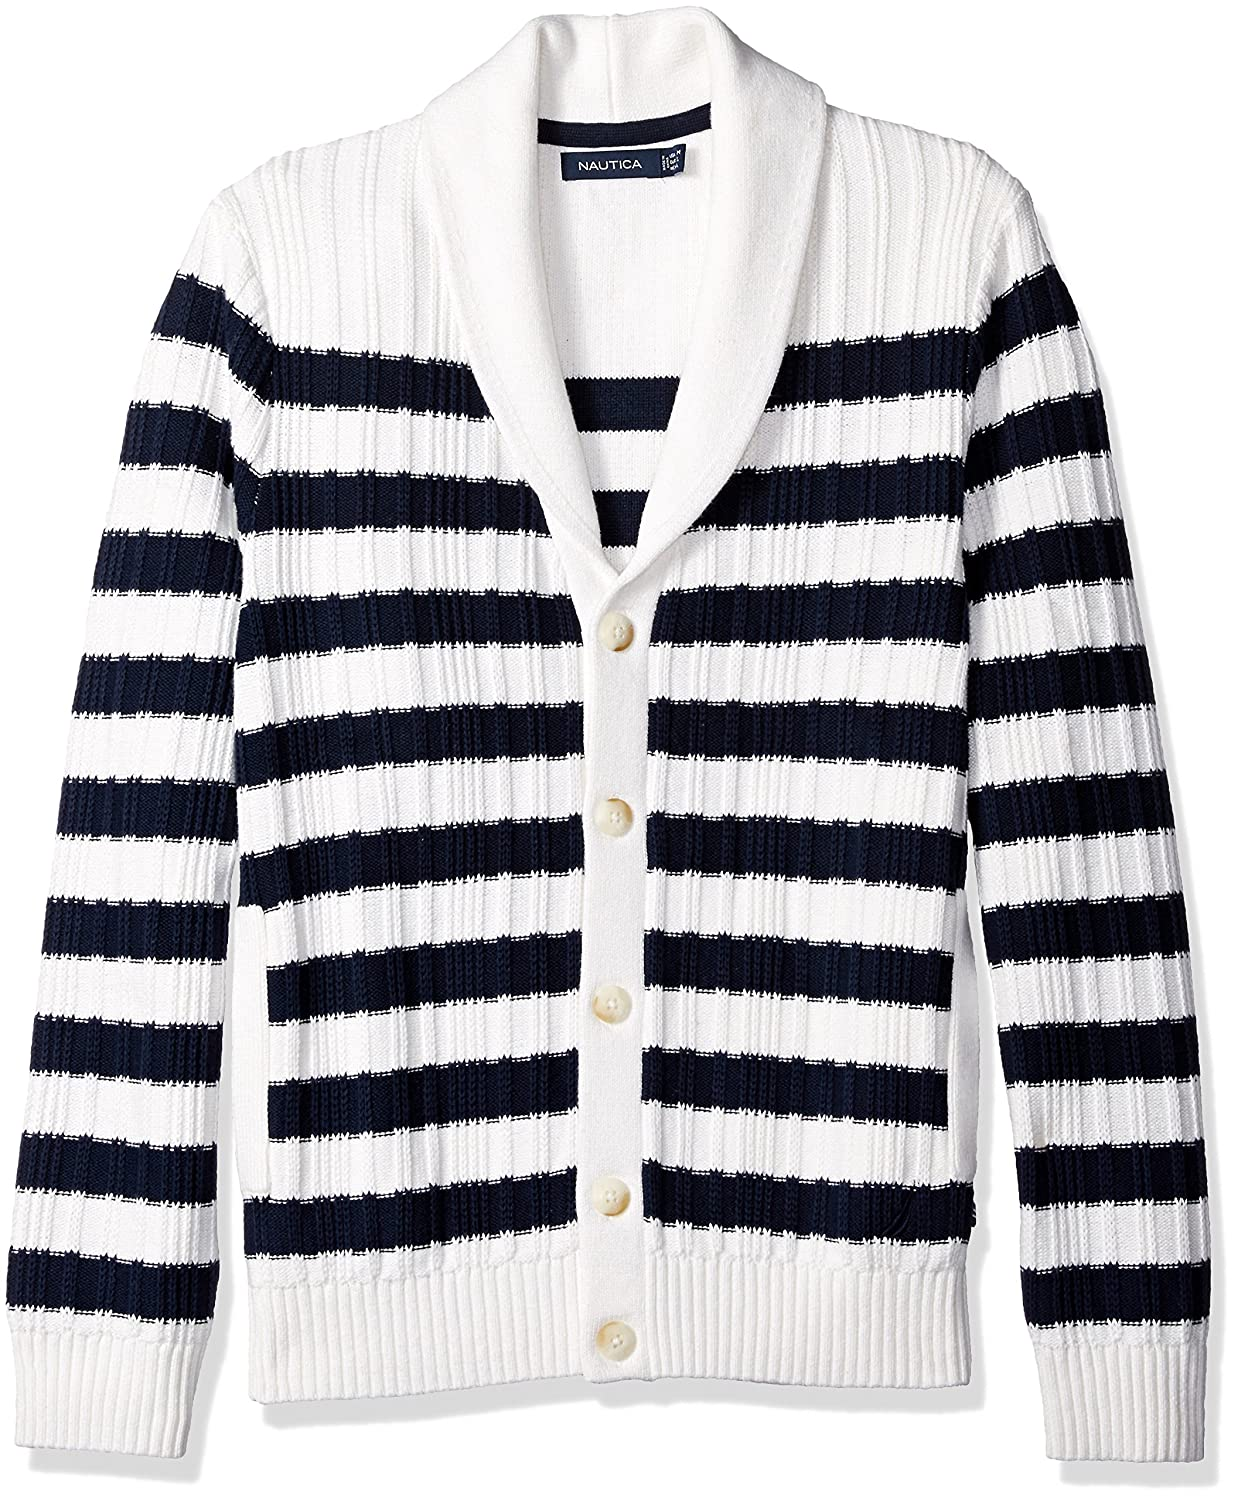 Edwardian Men's Shirts & Sweaters Nautica Mens Breton Stripe Cardigan $128.00 AT vintagedancer.com